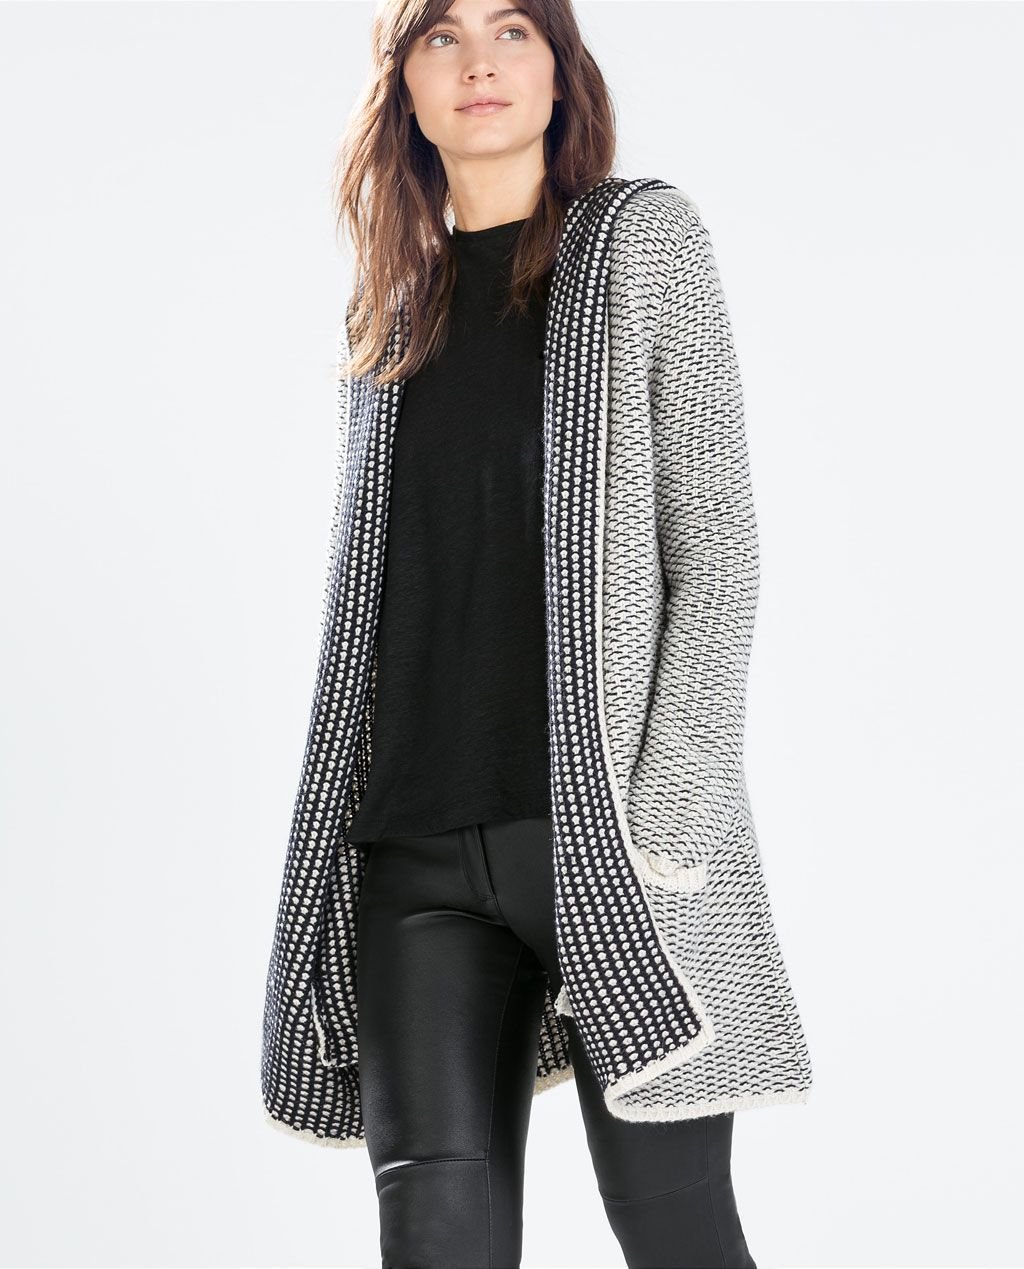 Image 2 of KNIT HOODED CARDIGAN from Zara | STYLE - FASHION ...